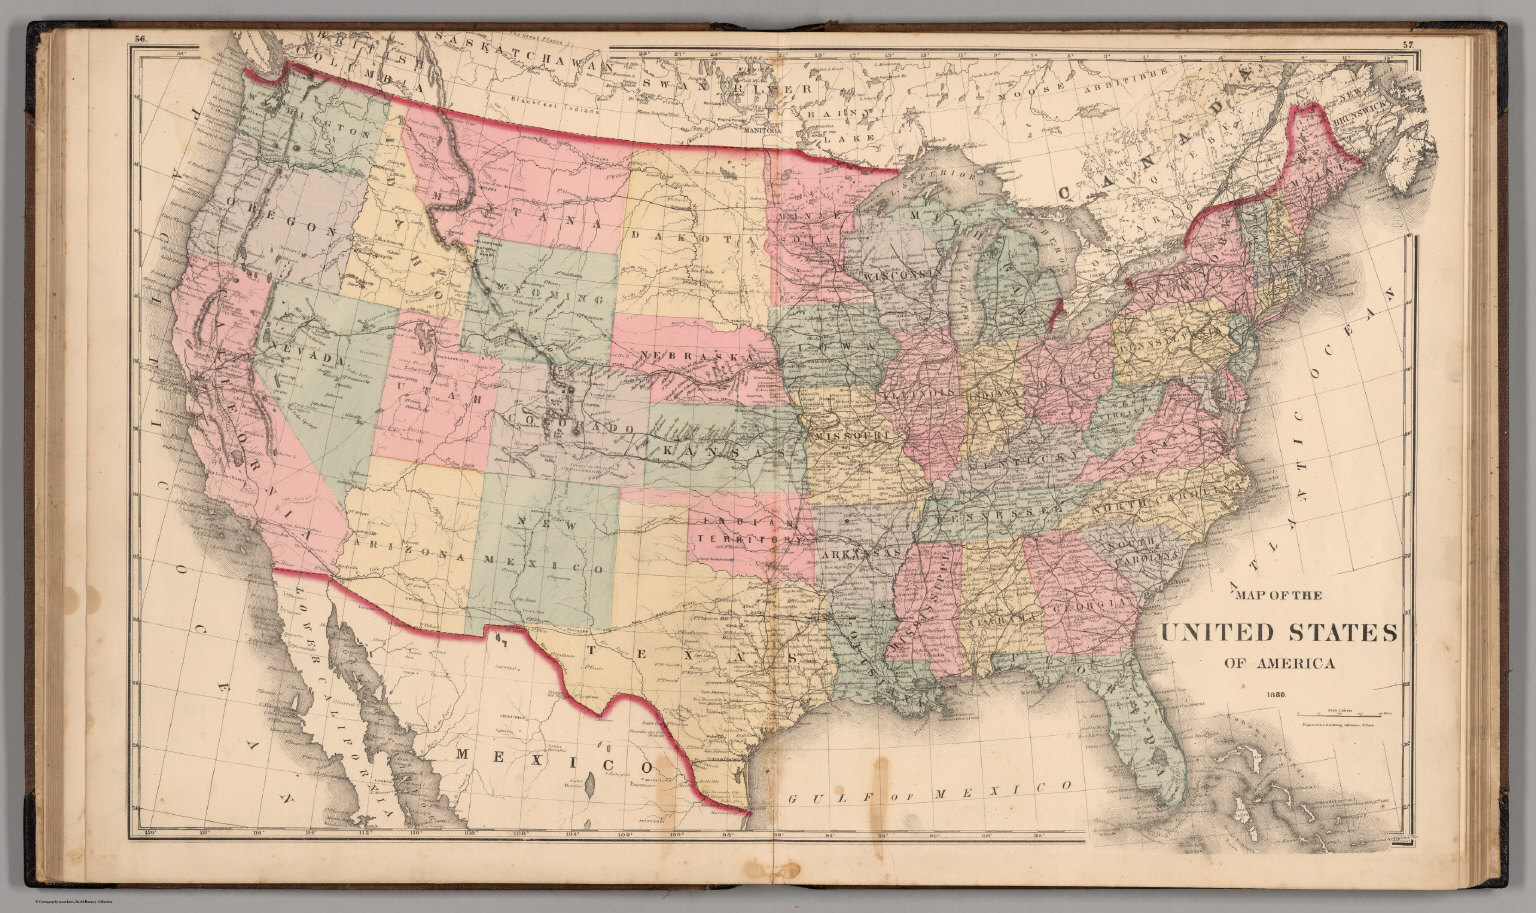 united states of america 1880